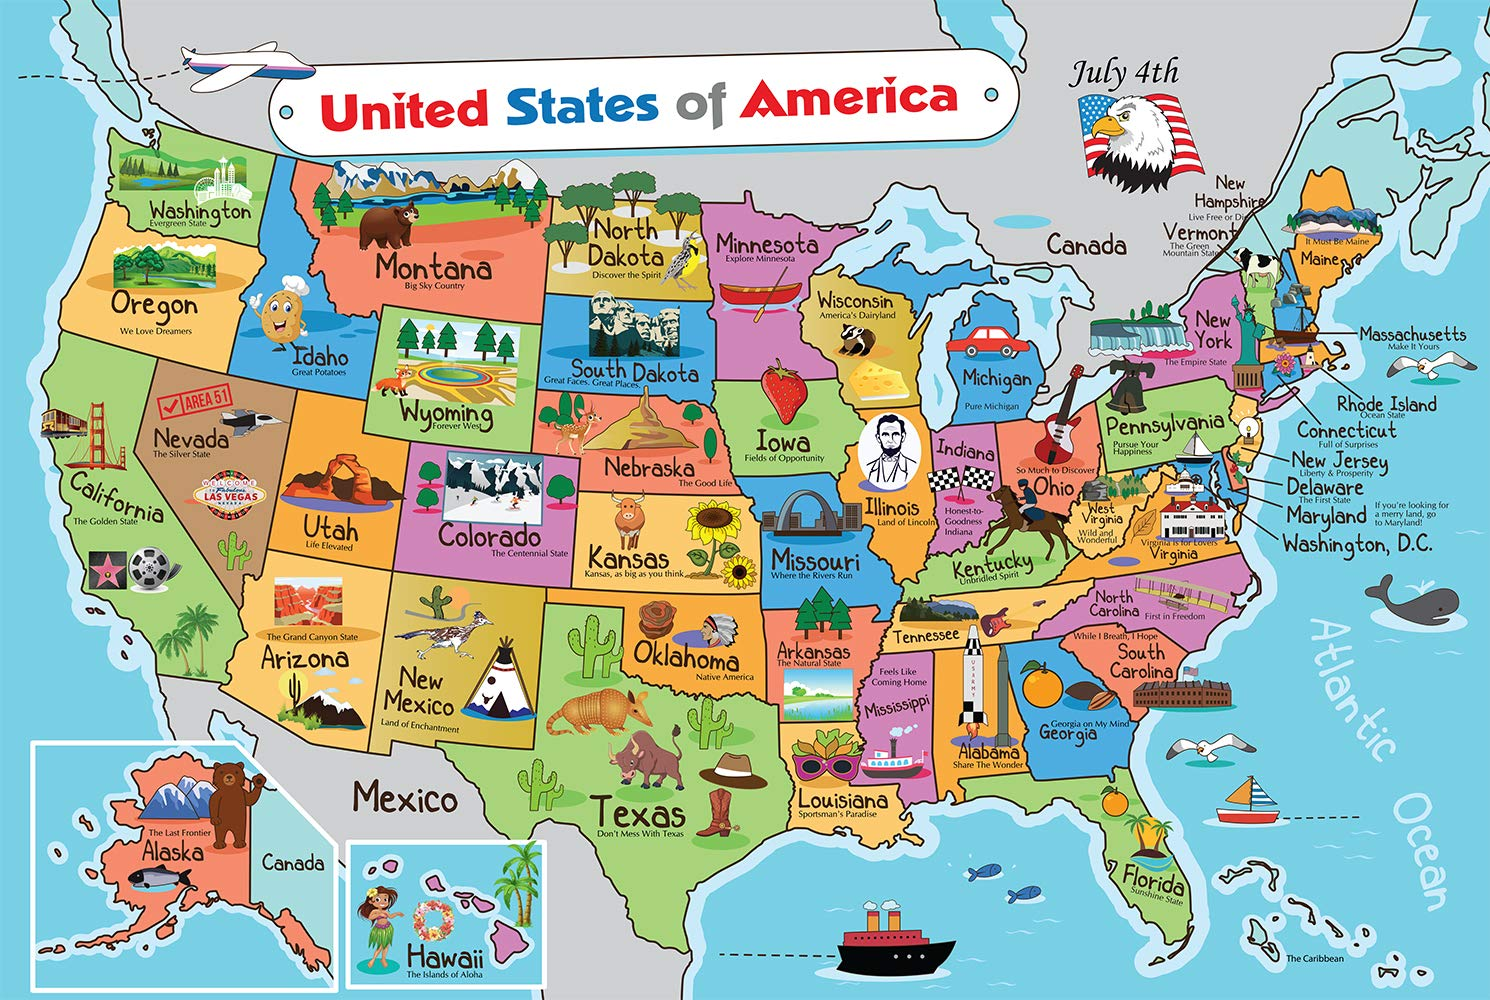 One 2 Sided Wall Map Usa Europe Centered World Map Newspaceview 2 Sided Childrens Wall Map 27 X 17 5 Inches 2 Side Laminated Geography Materials Education Crafts